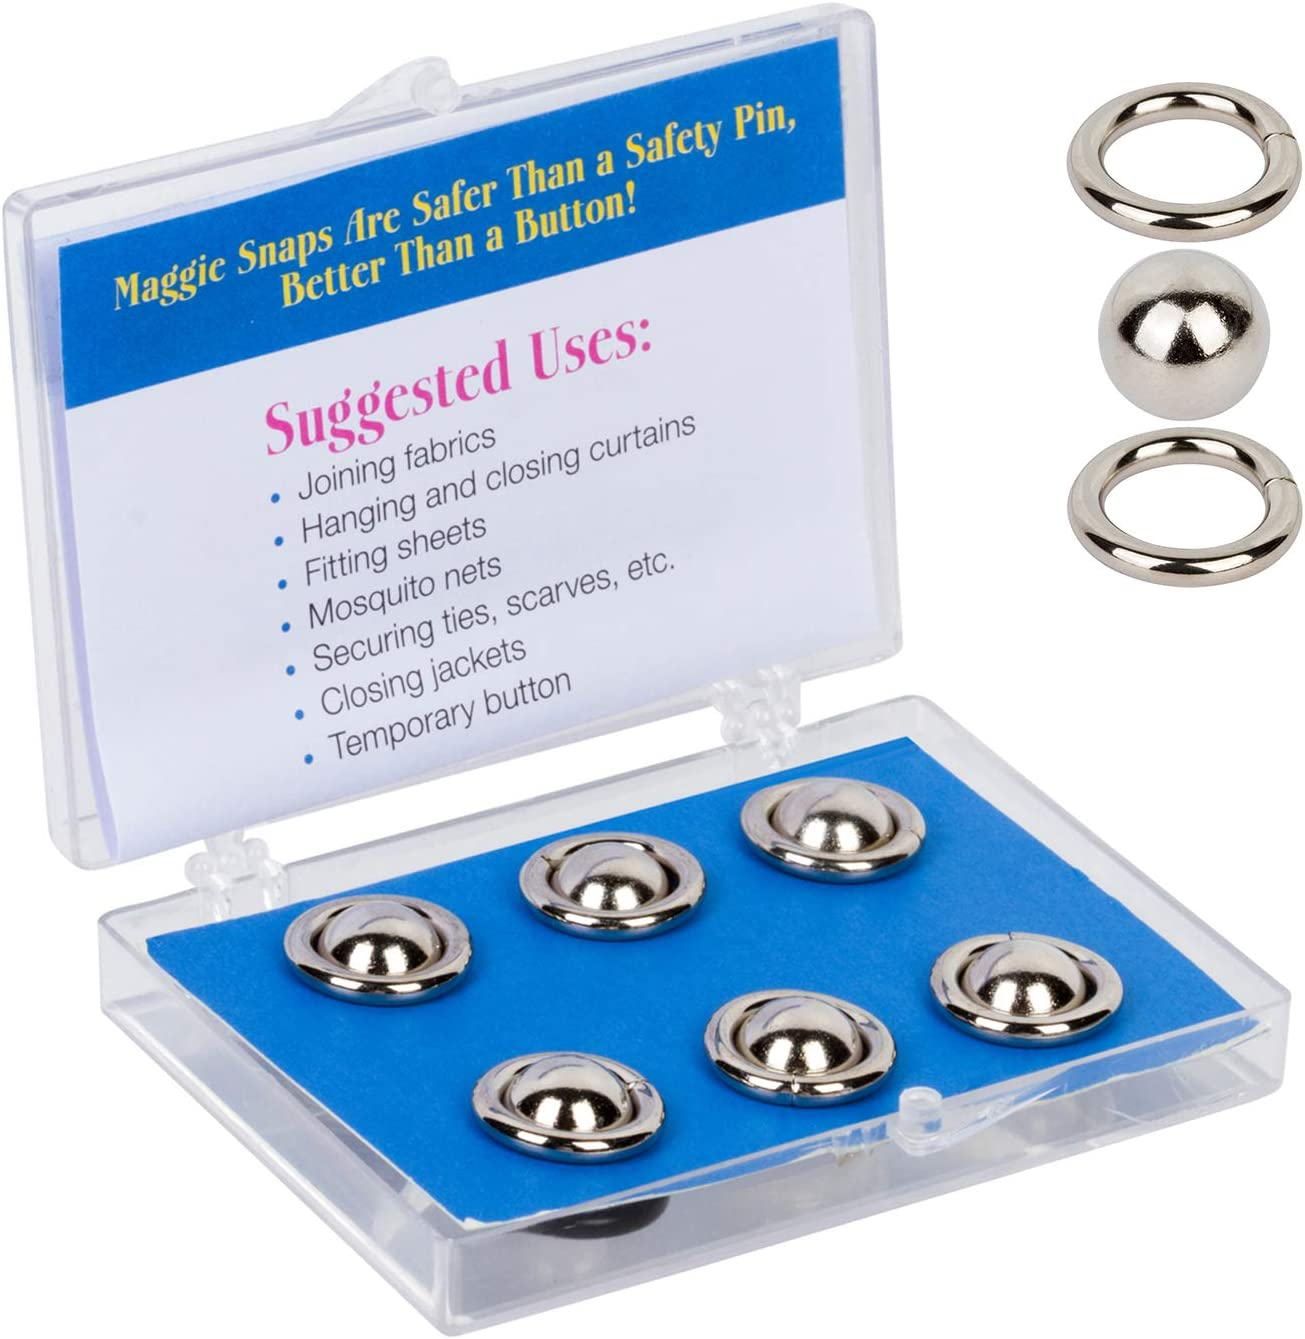 Magnets are NOT Included. Maggie Rings for Maggie Snaps are Optional Colored Rings to Coordinate with Fabrics